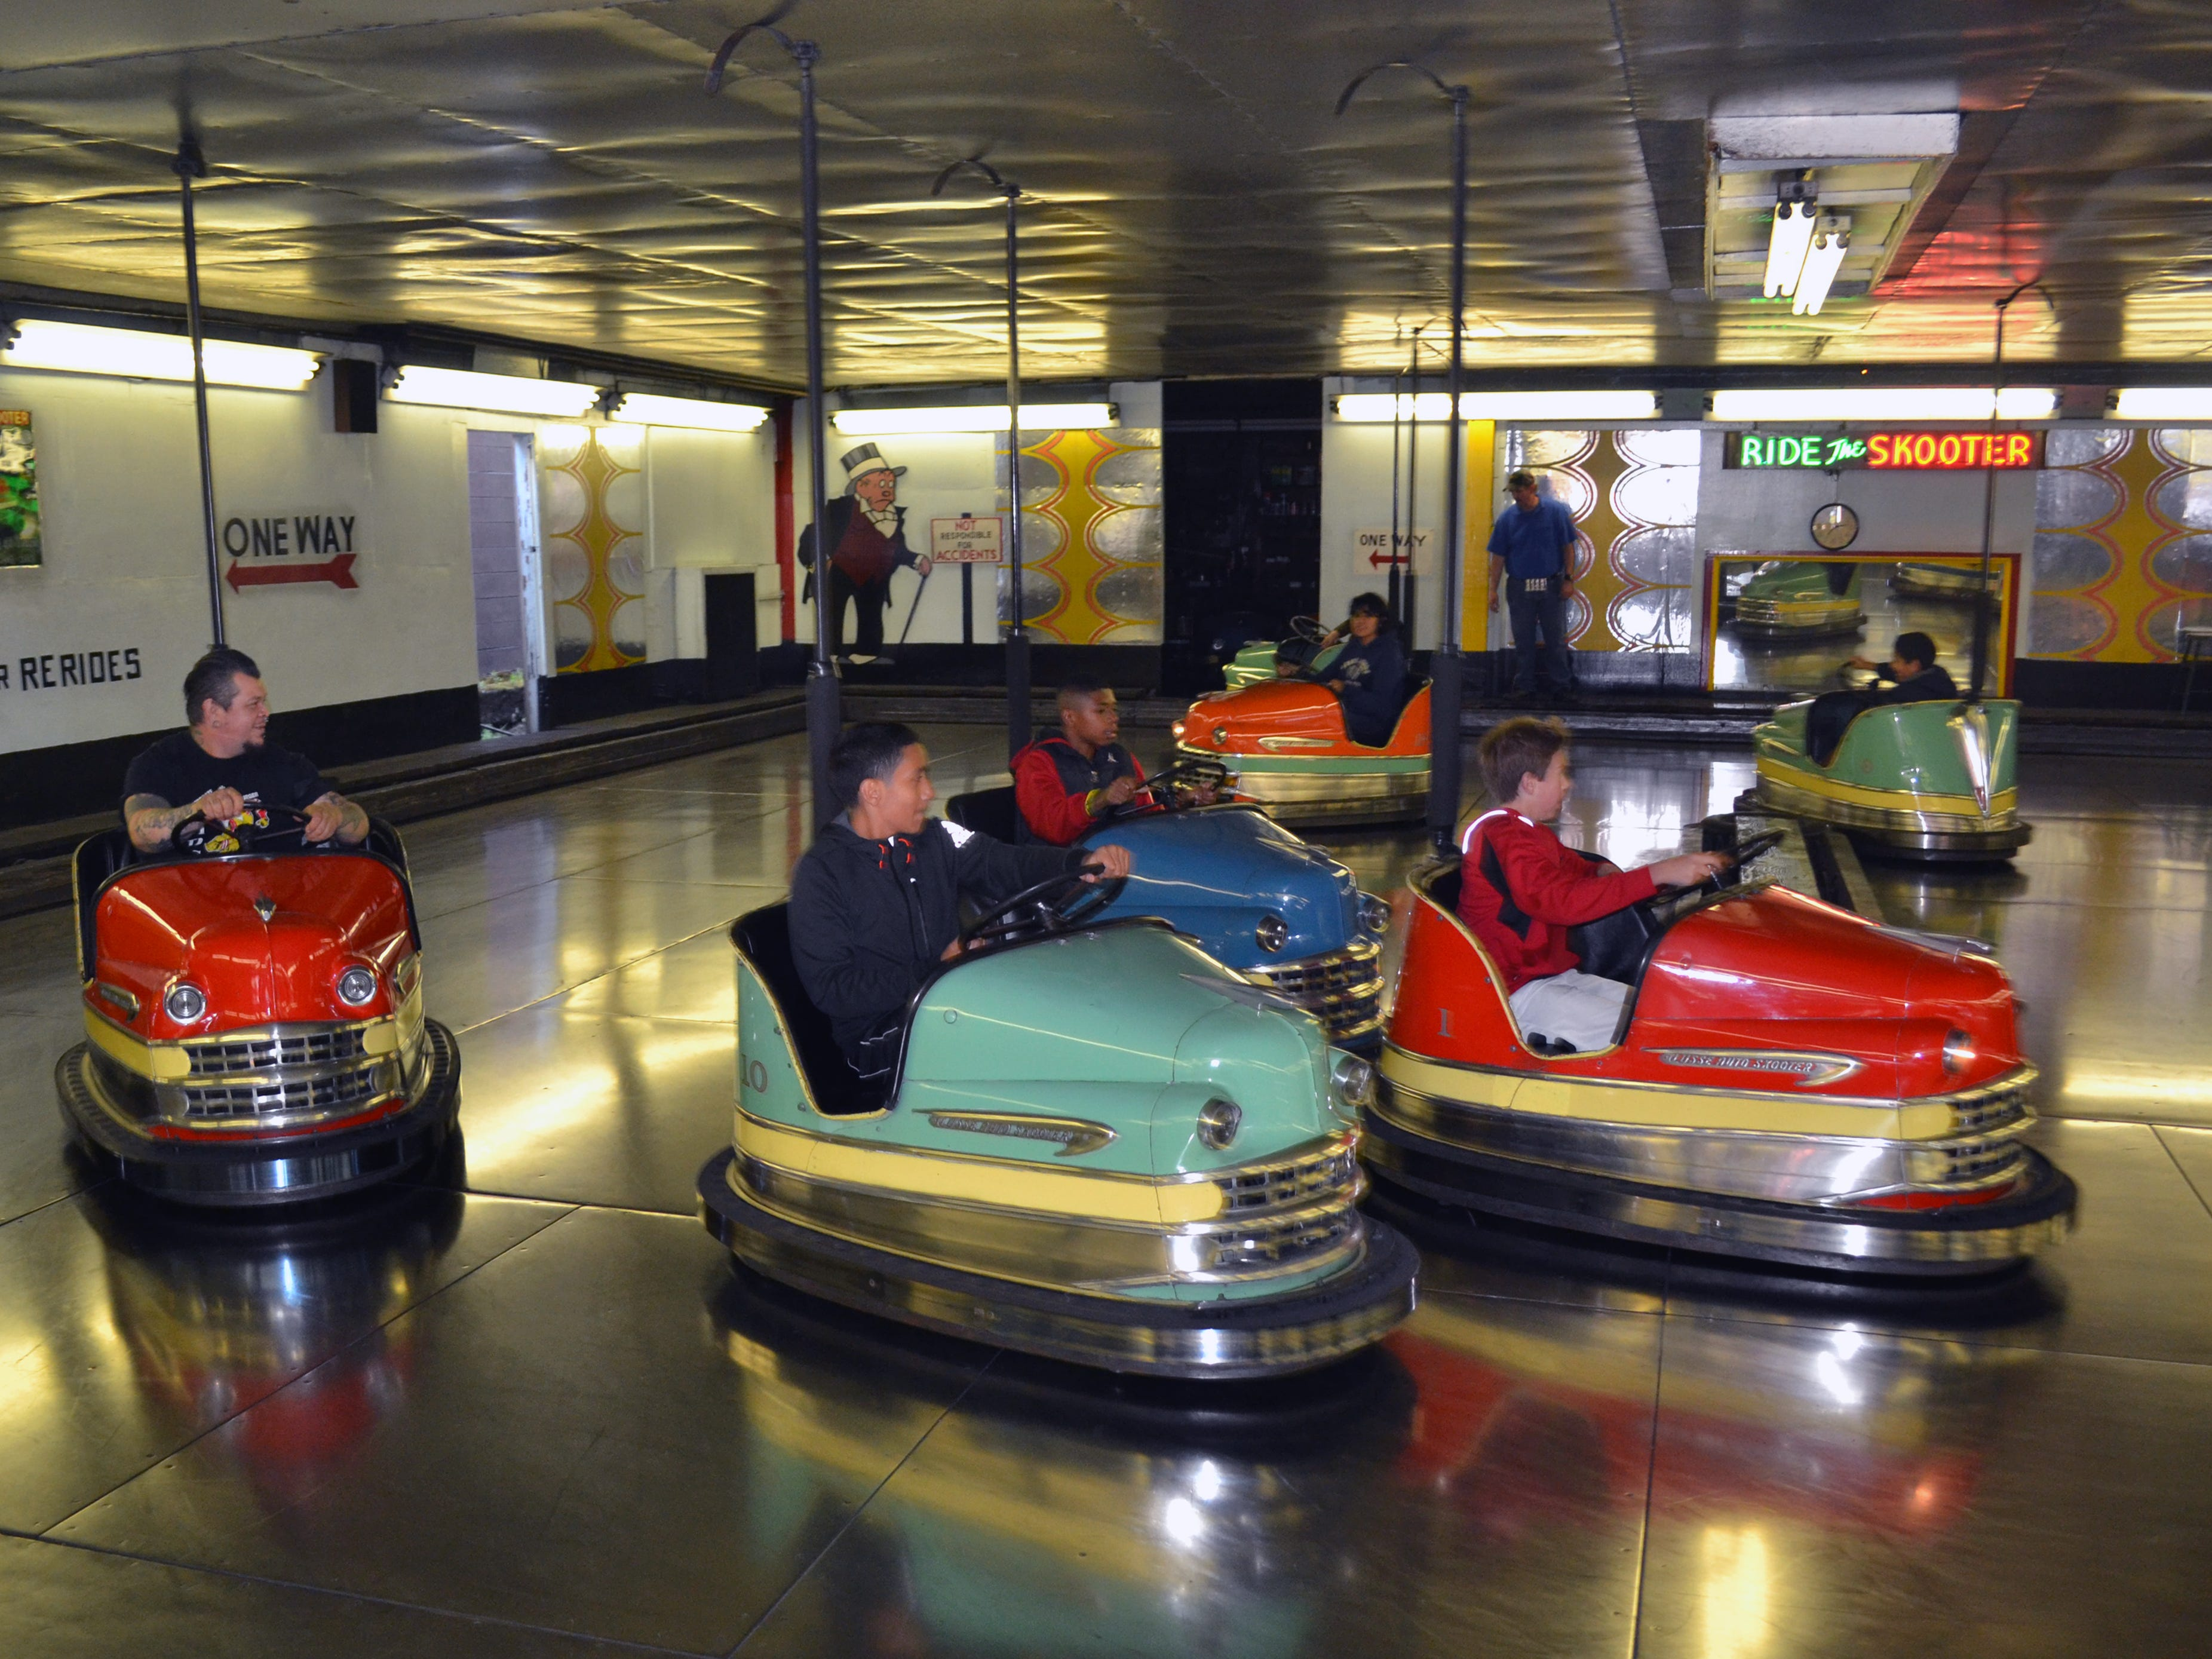 The tiny Interstate Amusement in Seaside, Oregon, maintains a fleet of sharp-looking Lusse cars.